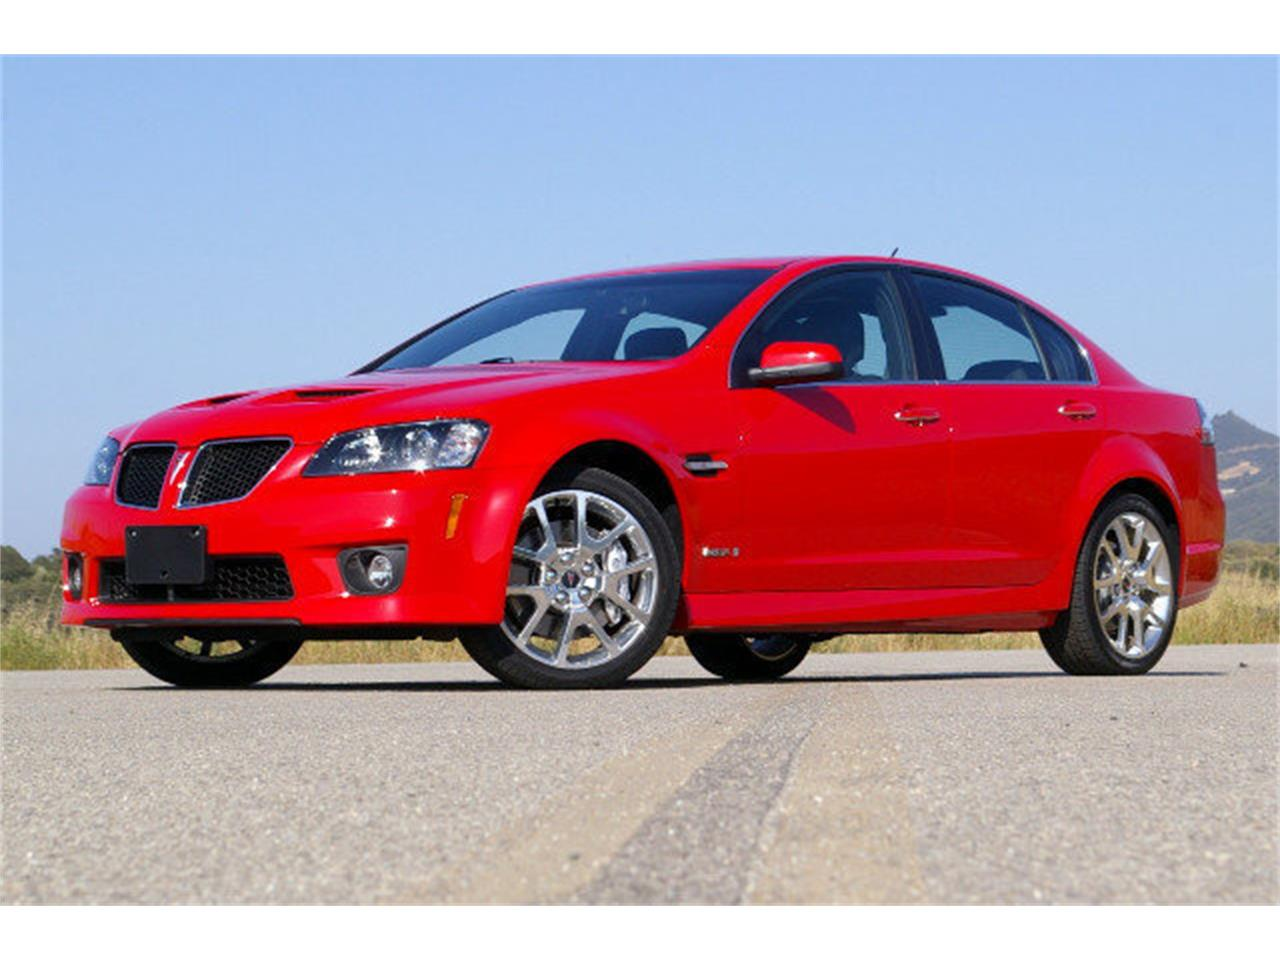 Large Picture of '09 Pontiac G8 - $26,995.00 Offered by Hollywood Motors - LDI6